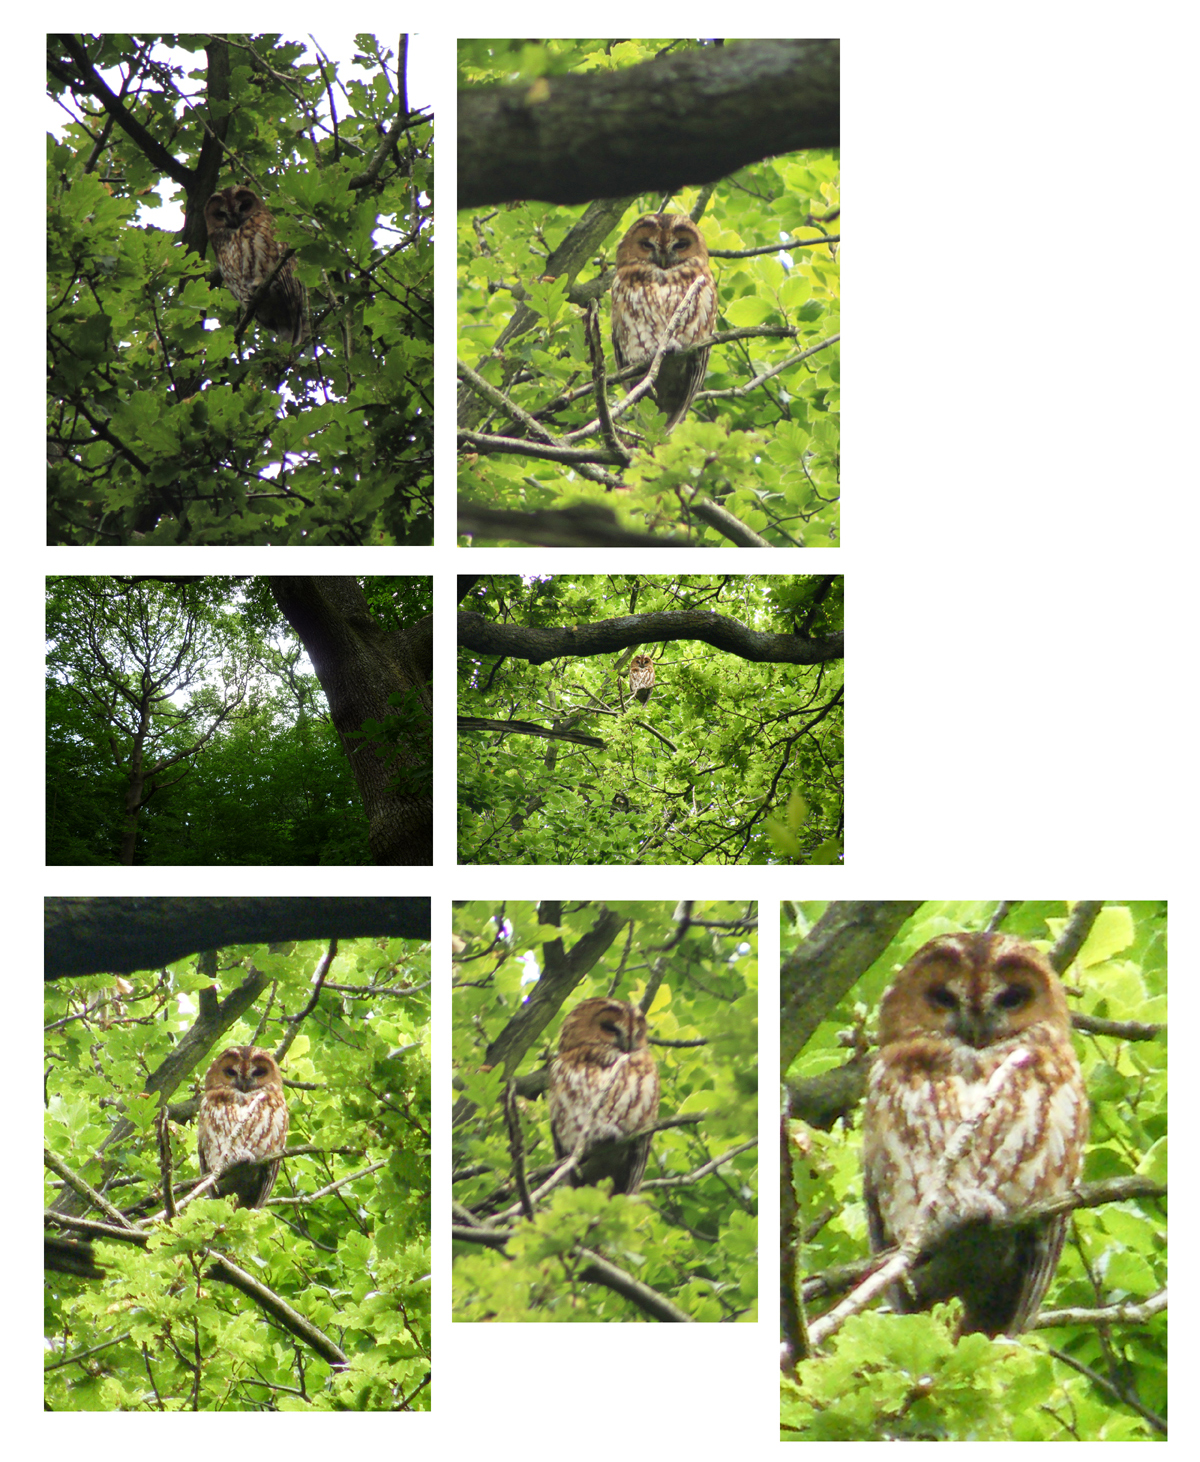 Owl pics june18th 2010